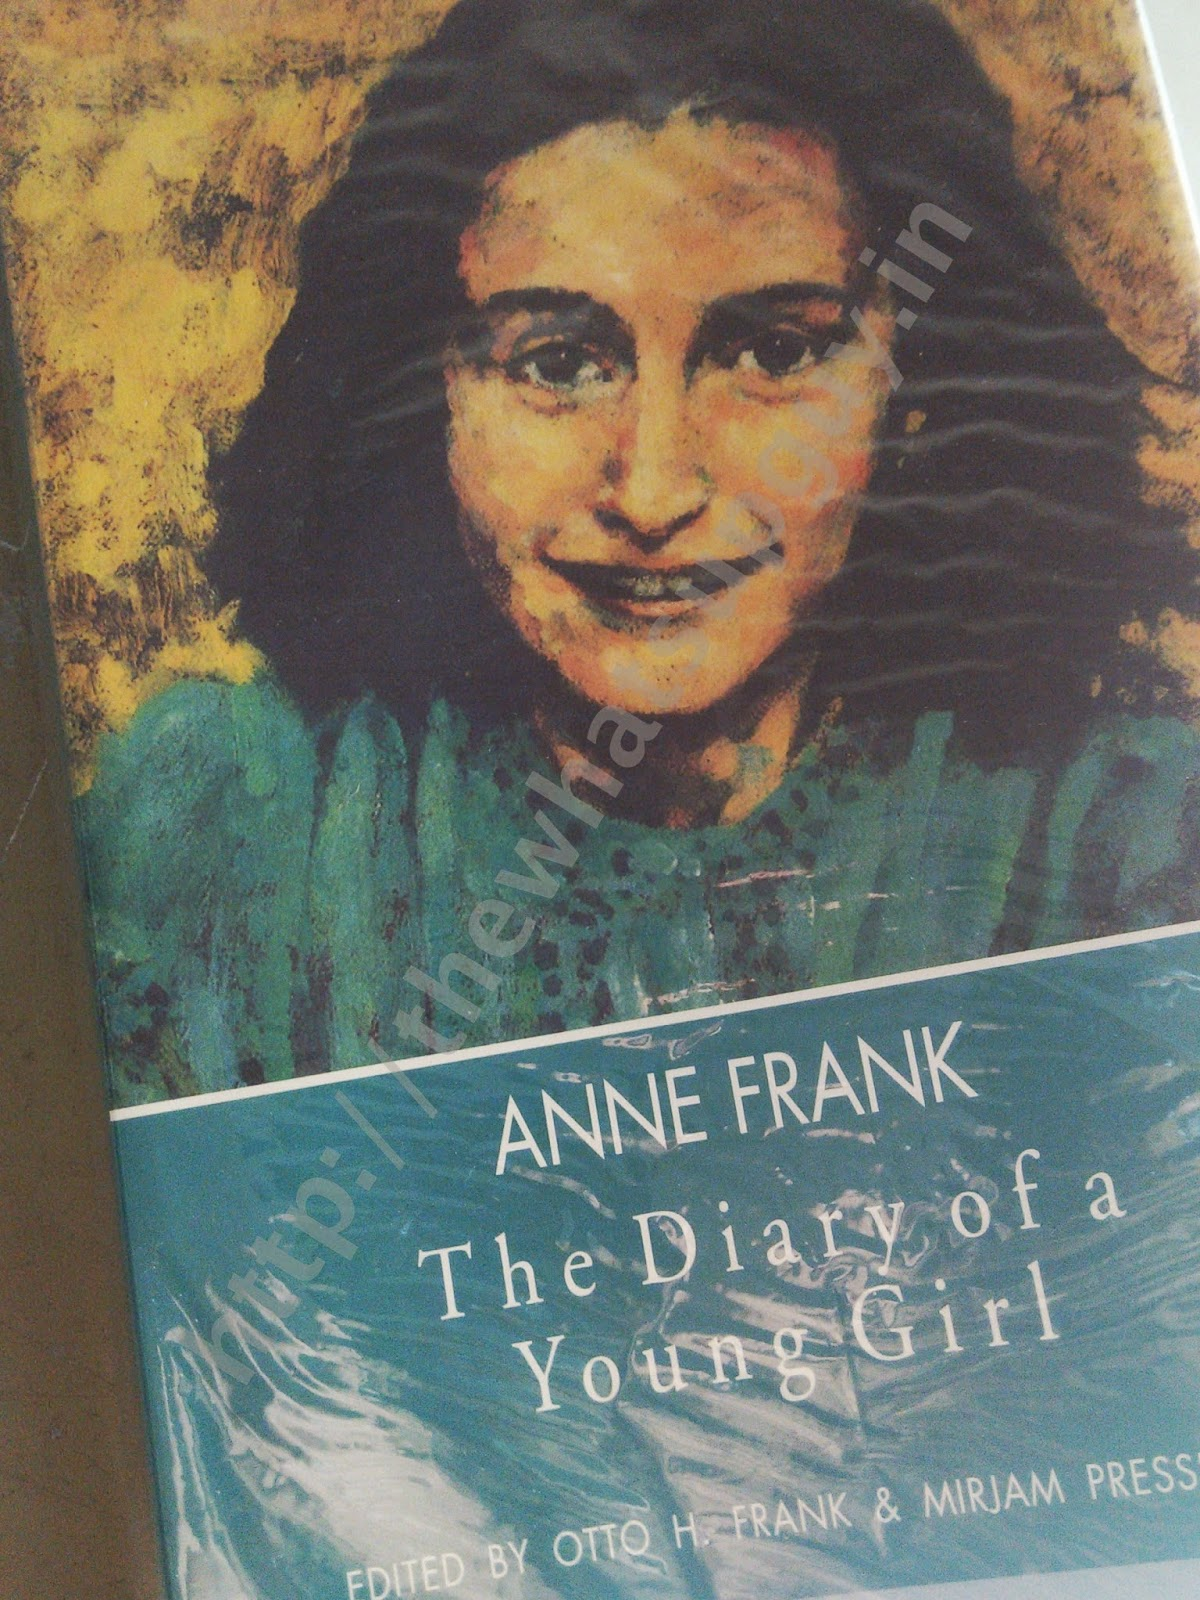 books the whats up guy anne frank the diary of a young girl anne frank the diary of a young girl book review summary